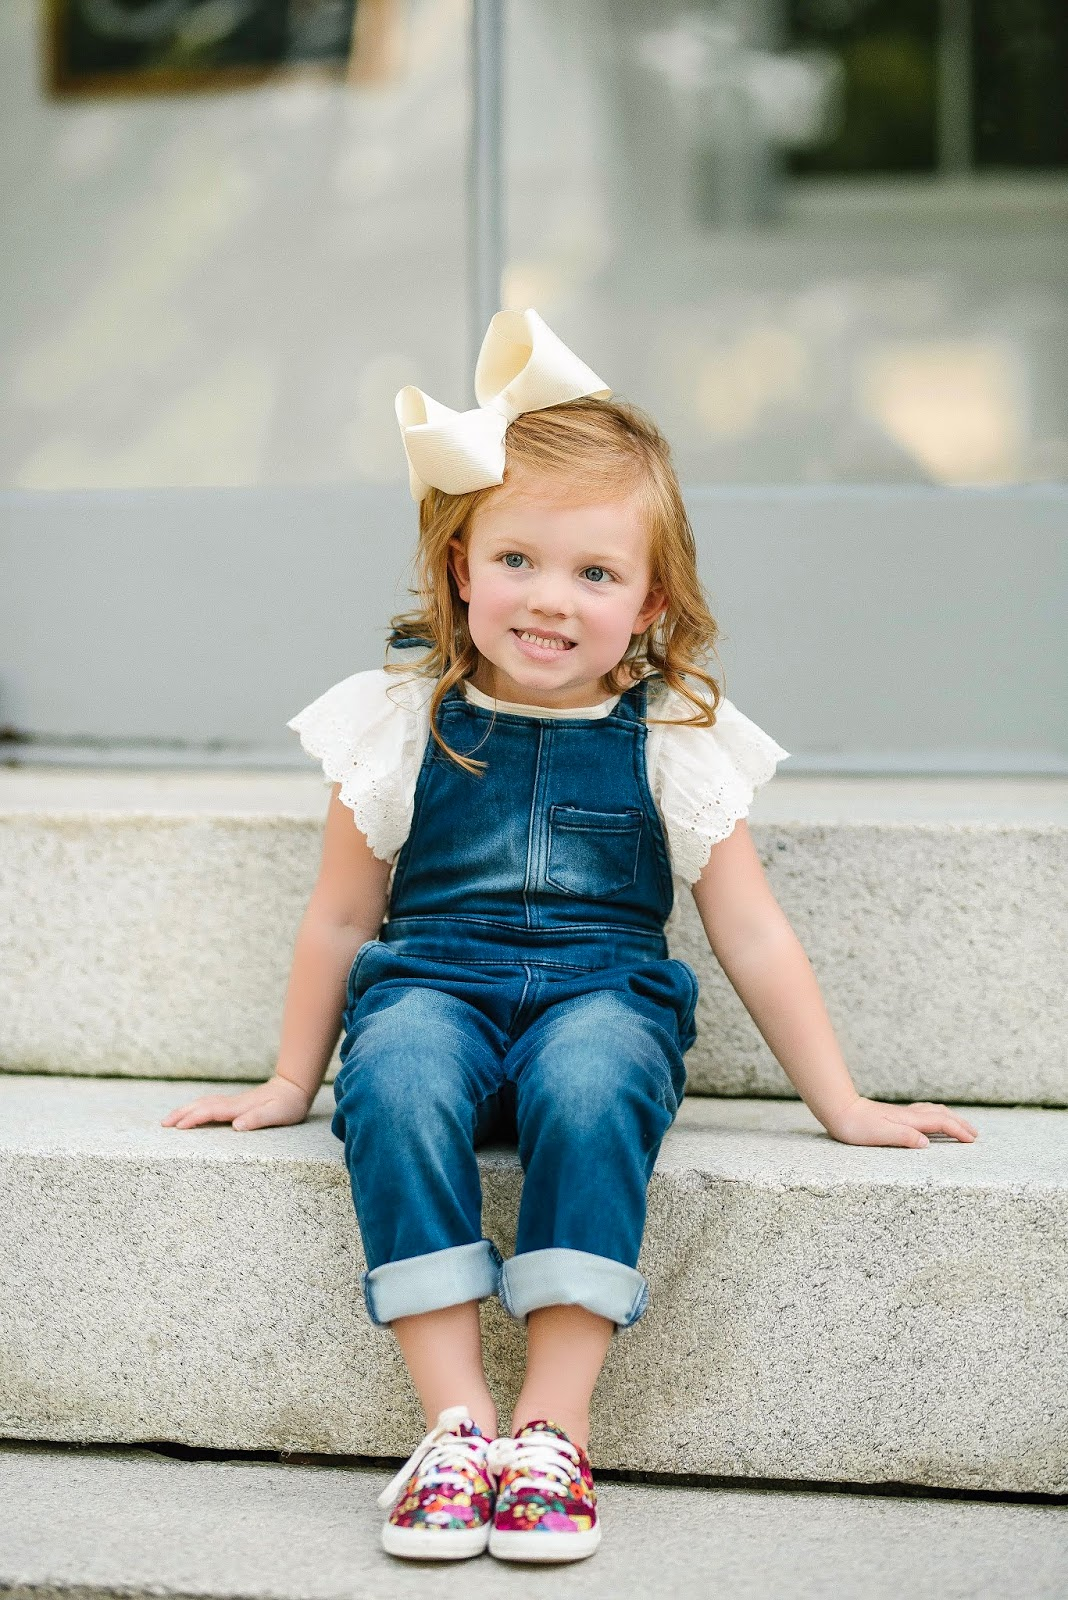 Kid's Fashion: Target Style Ruffle Overalls  and Keds x Rifle Paper Co. Sneakers - Something Delightful Blog